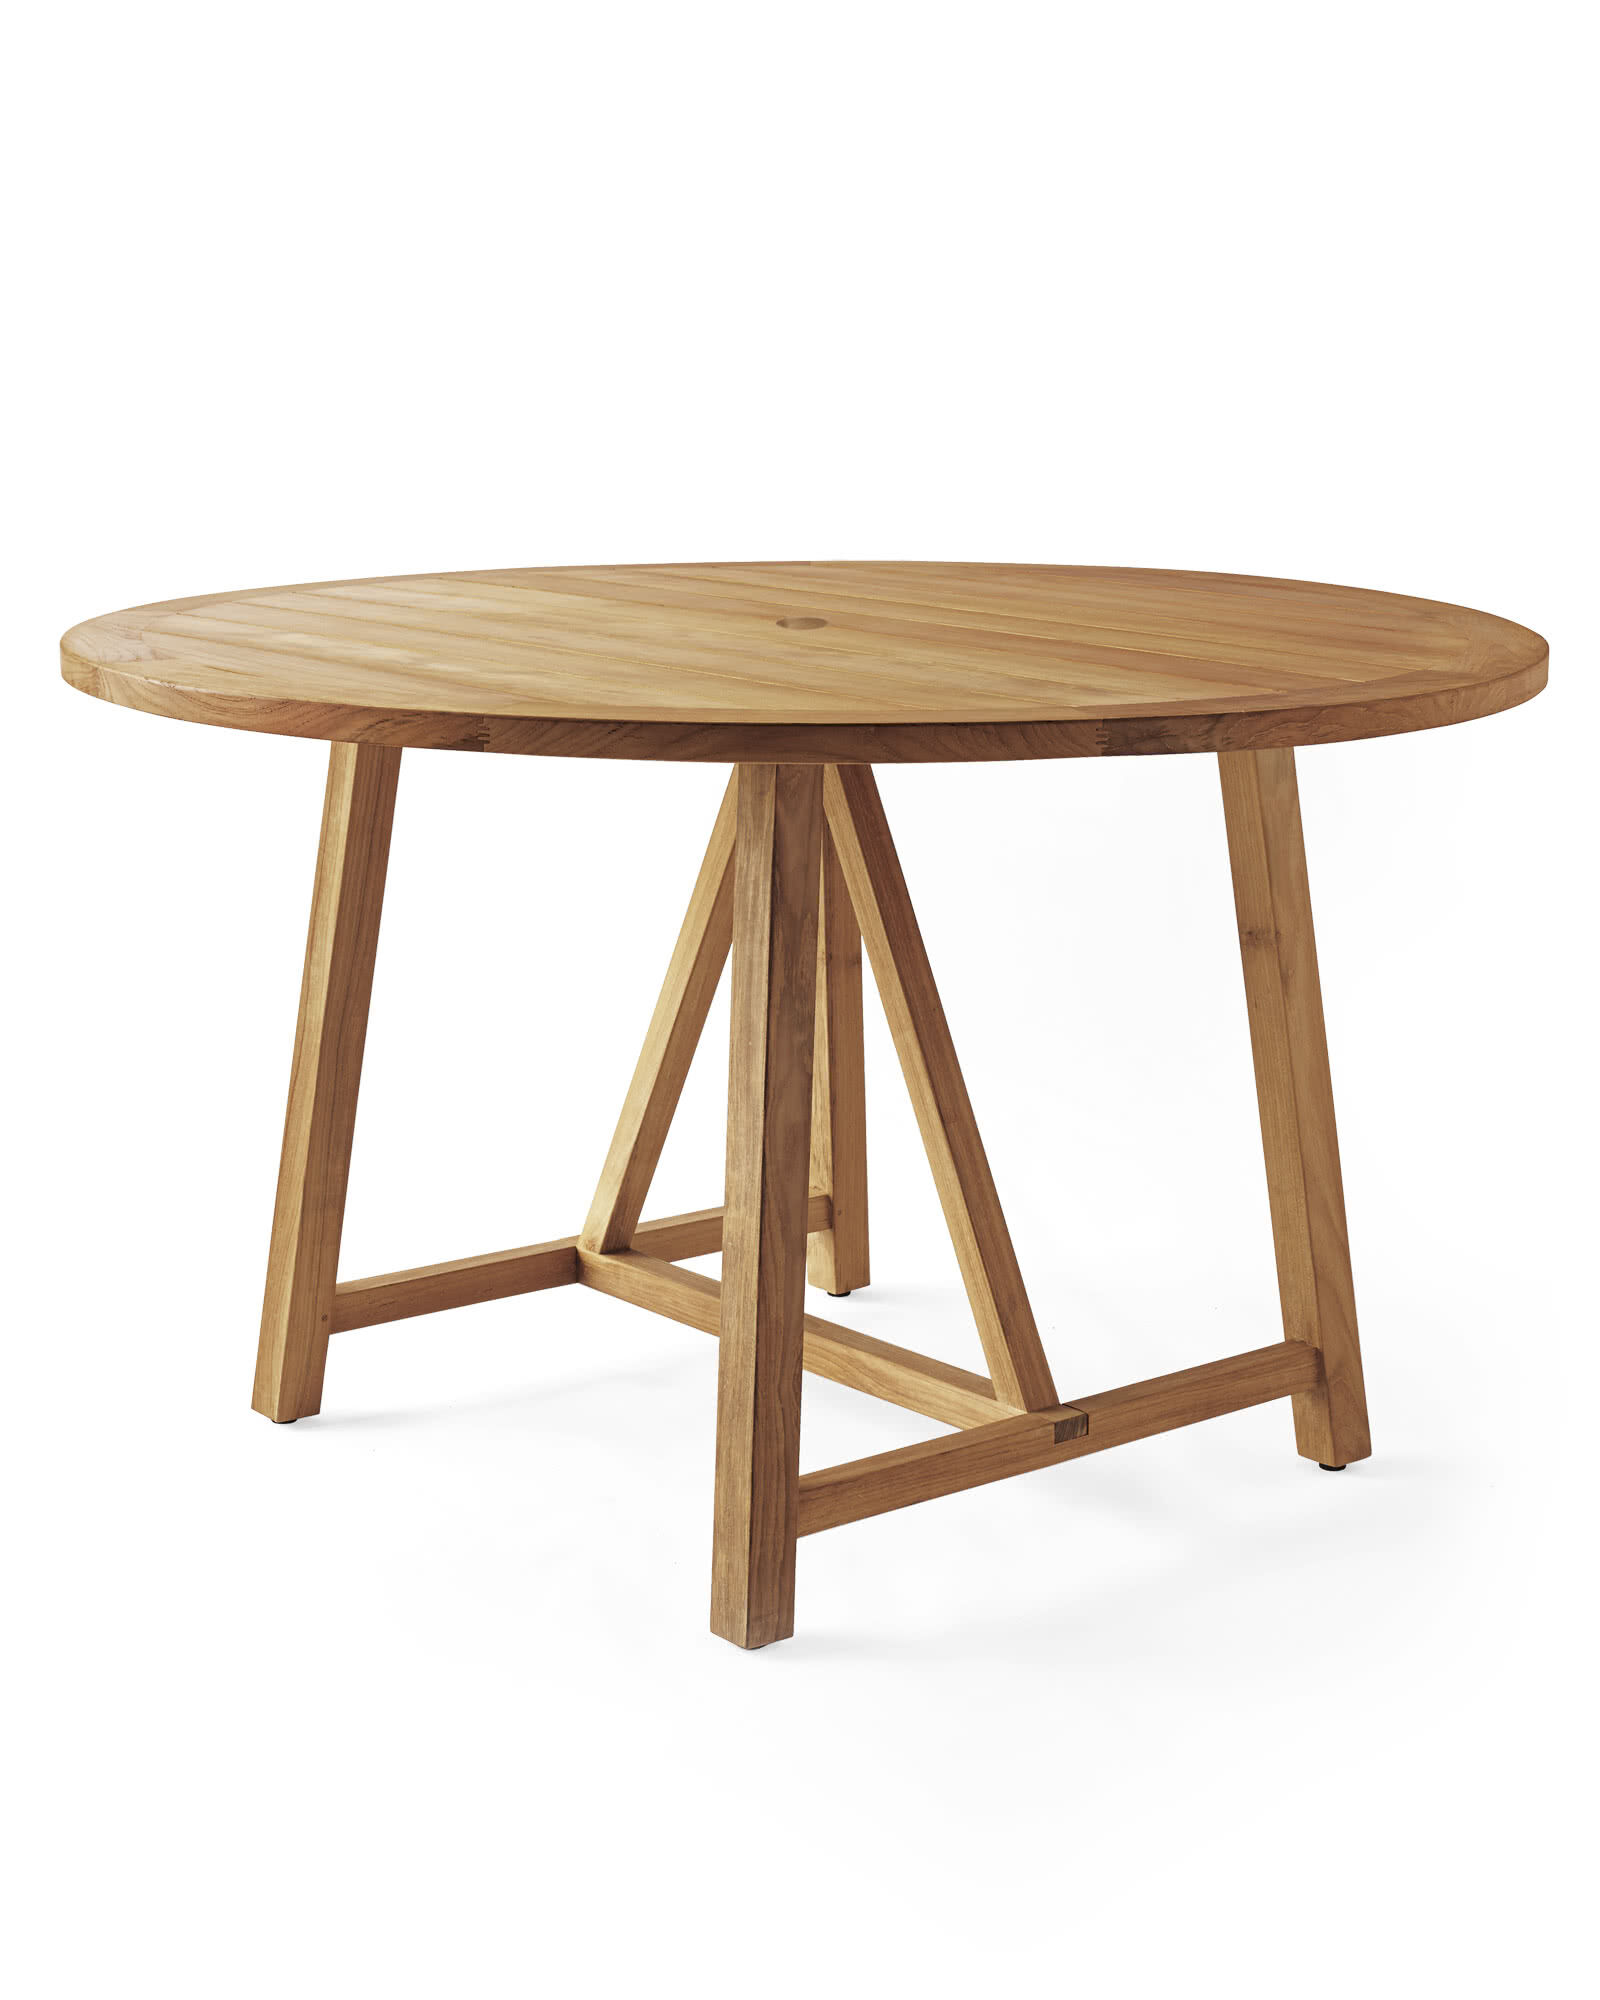 Crosby Teak Round Dining Table - Natural